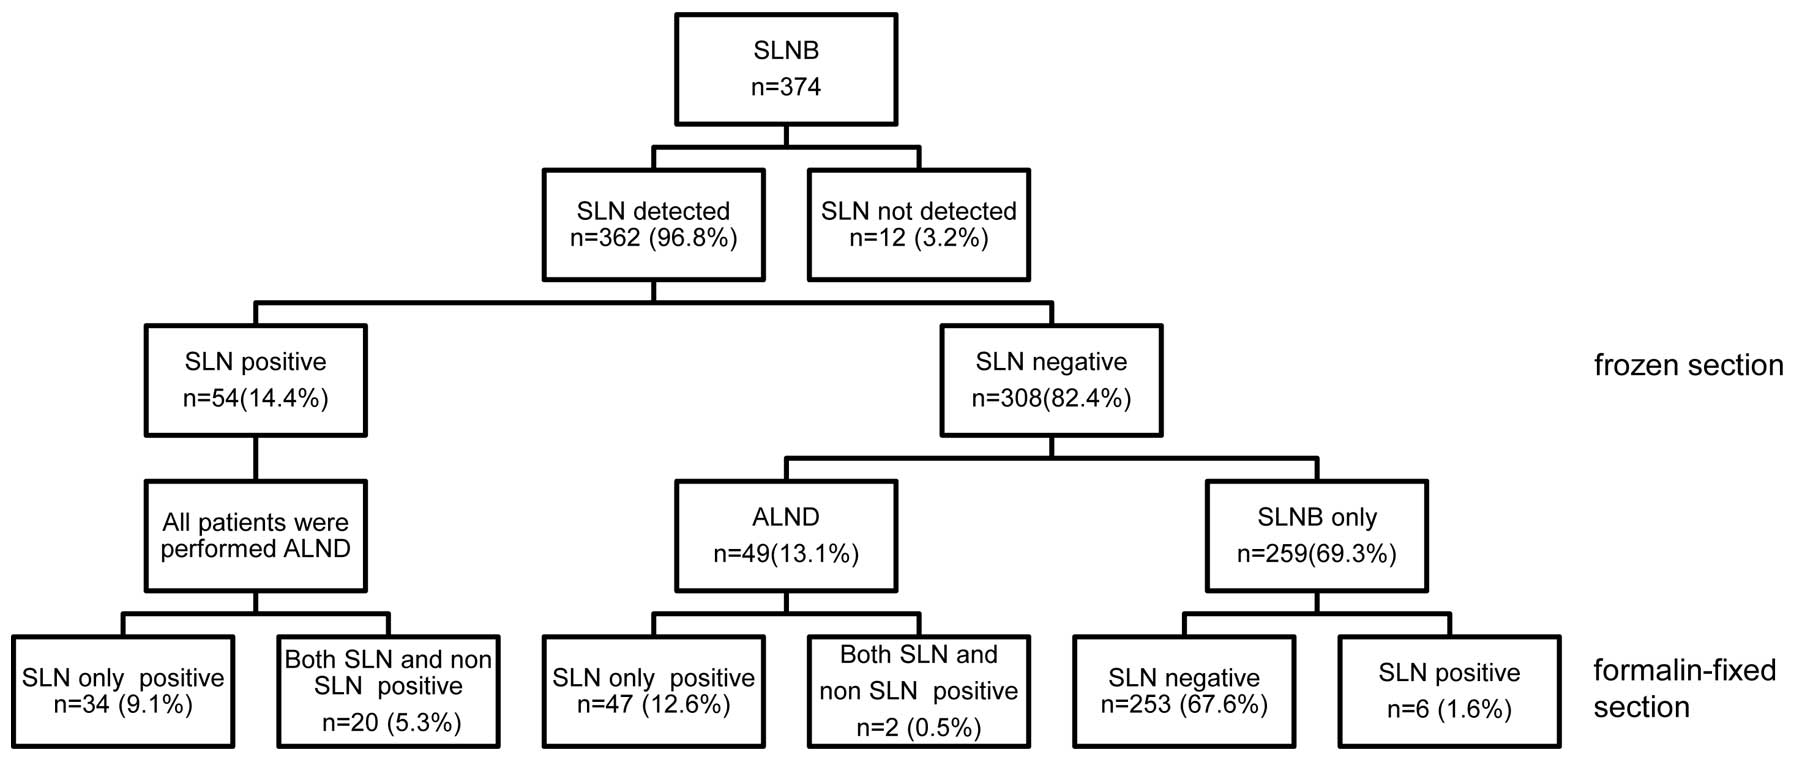 Use of the dyeguided sentinel lymph node biopsy method alone for slnb sentinel lymph node biopsy sln sentinel lymph node alnd axillary lymph node dissection ccuart Gallery